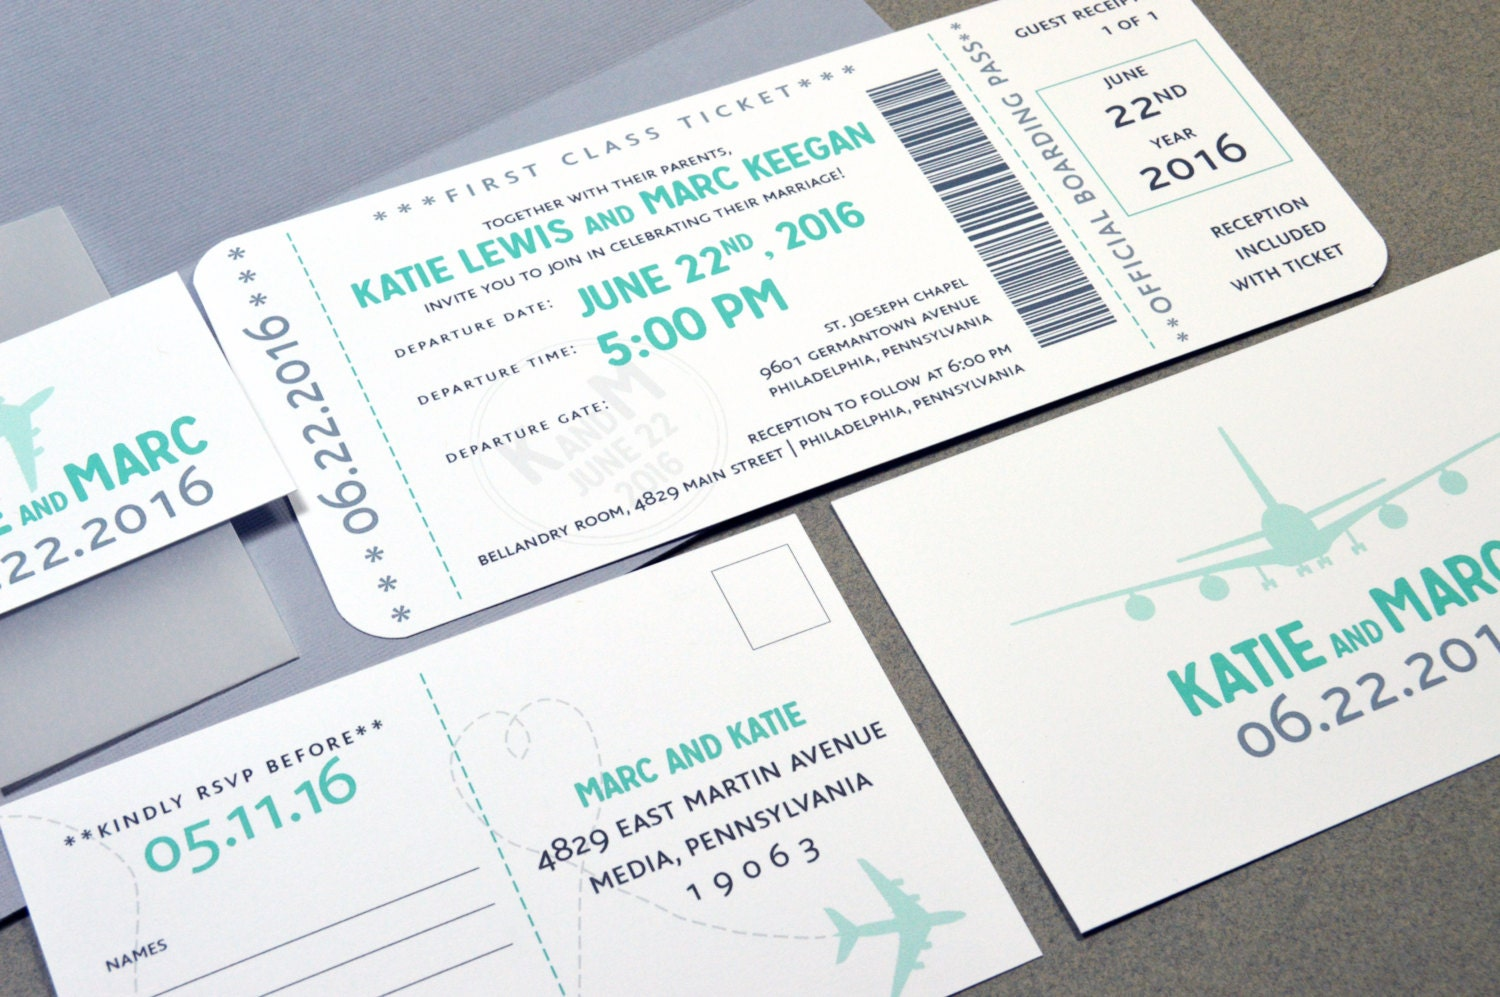 boarding pass wedding invitations - Dorit.mercatodos.co